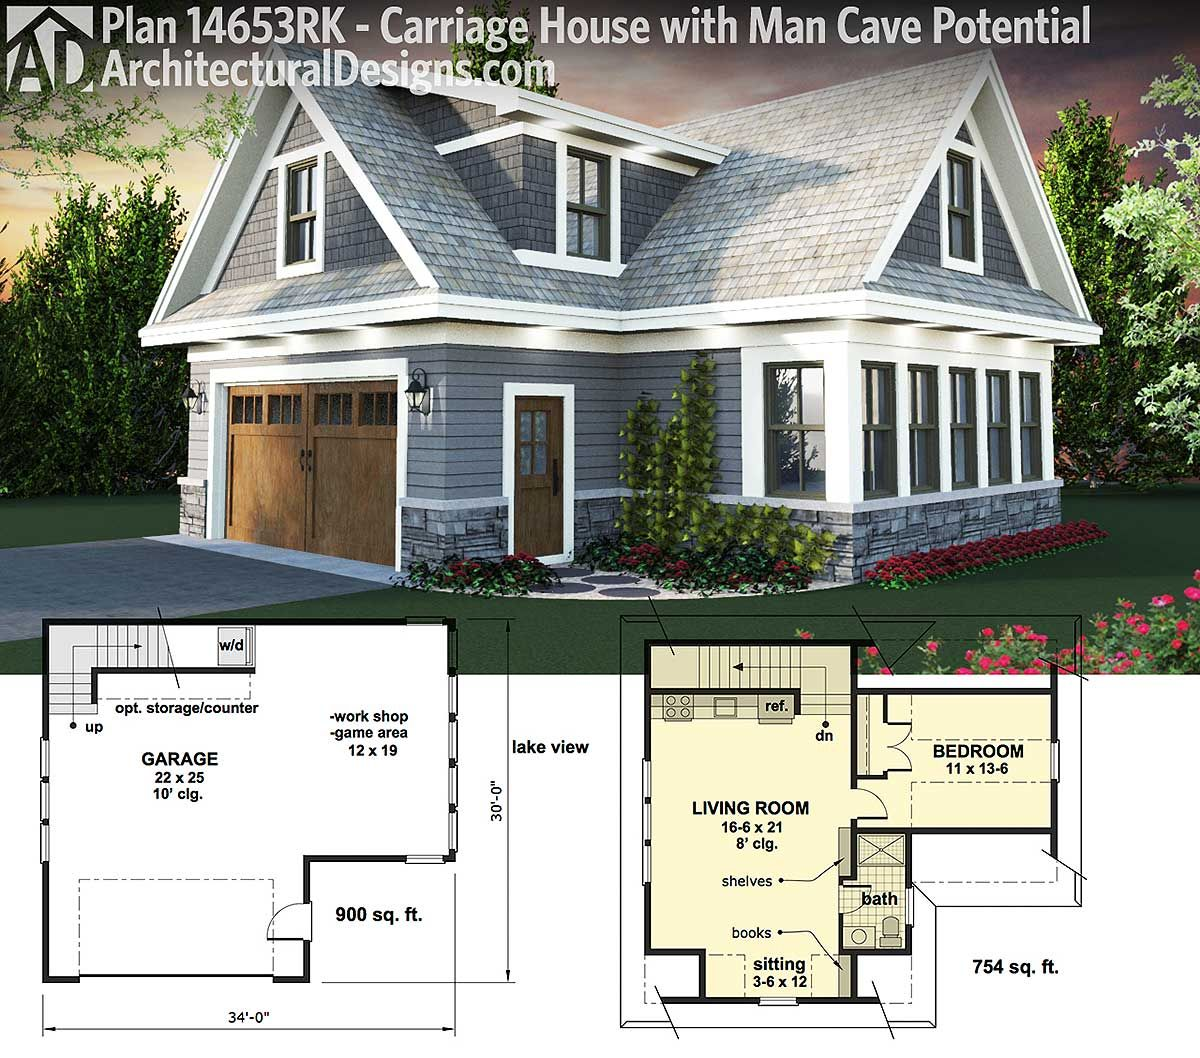 Plan 14653rk carriage house plan with man cave potential 3 bedroom carriage house plans